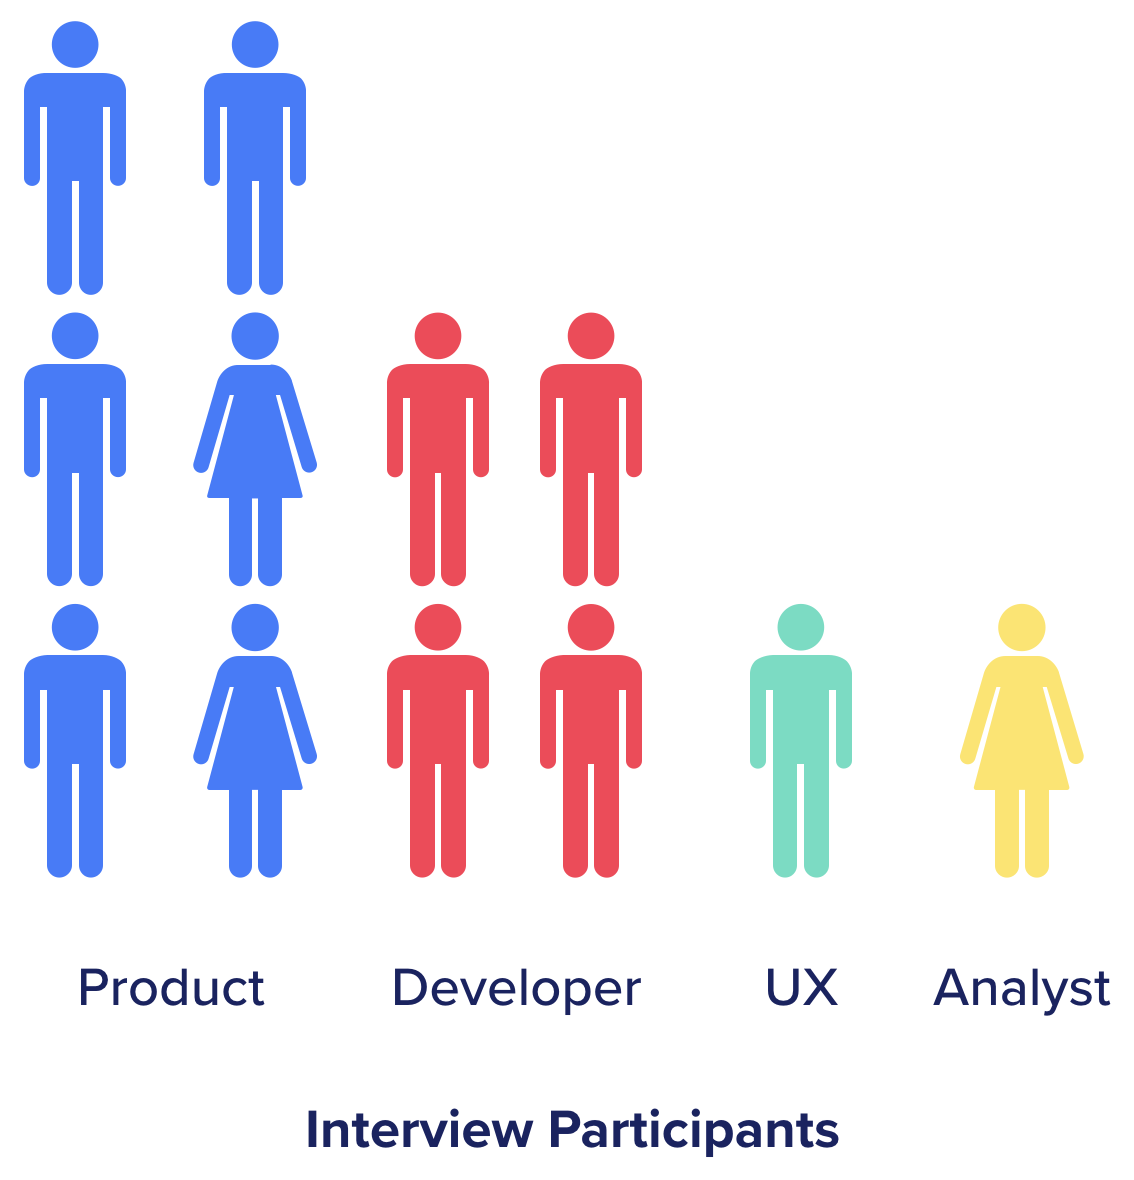 Interview Participants.png Participant